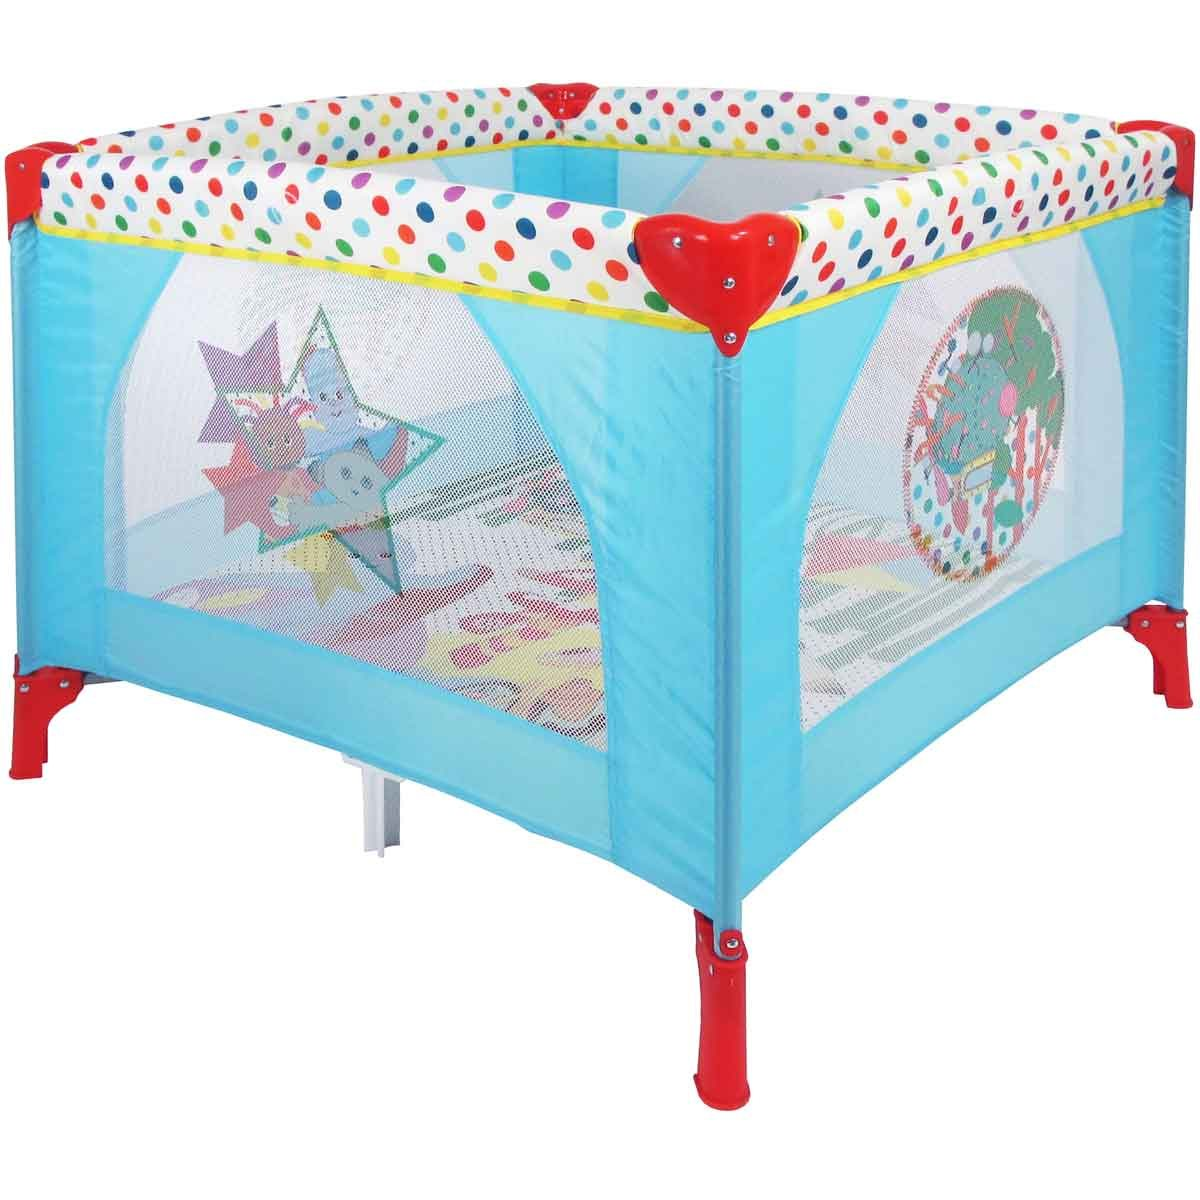 In The Night Garden Furniture In the night garden playpen samuel johnston in the night garden playpen click to view larger image workwithnaturefo